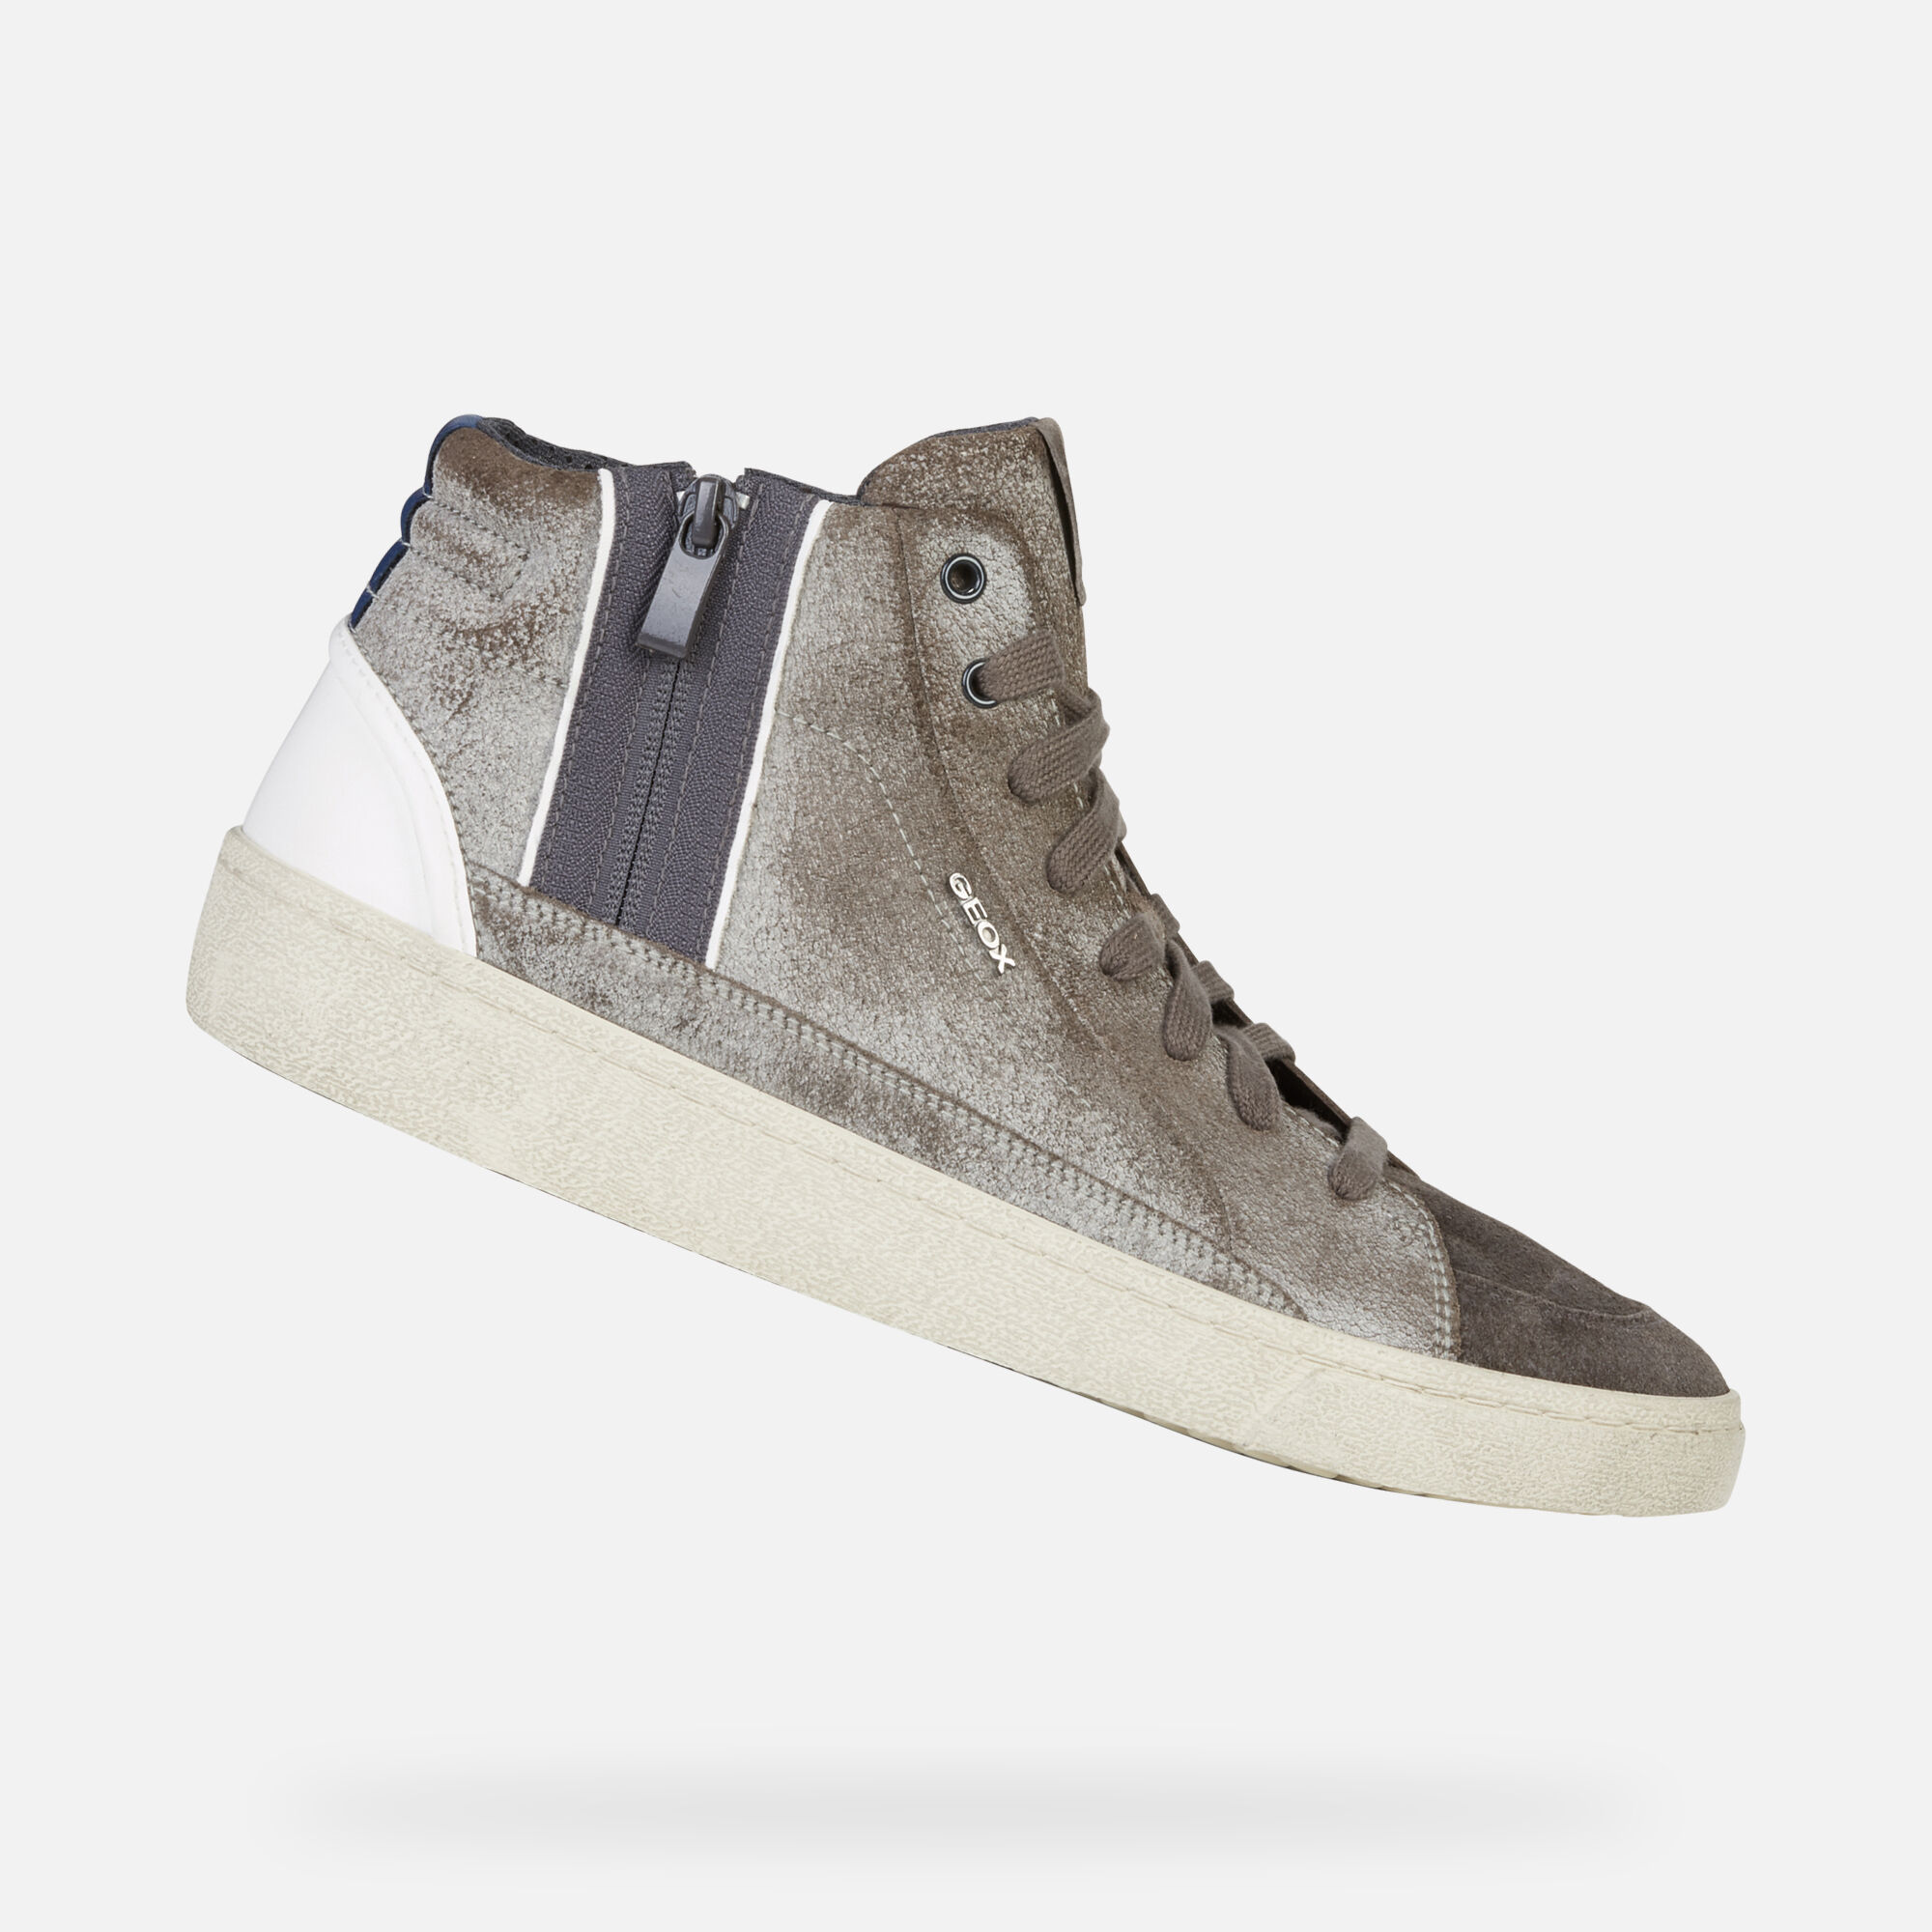 Geox WARLEY Uomo: Sneakers Alte Pietra | Geox ® Sito Ufficiale